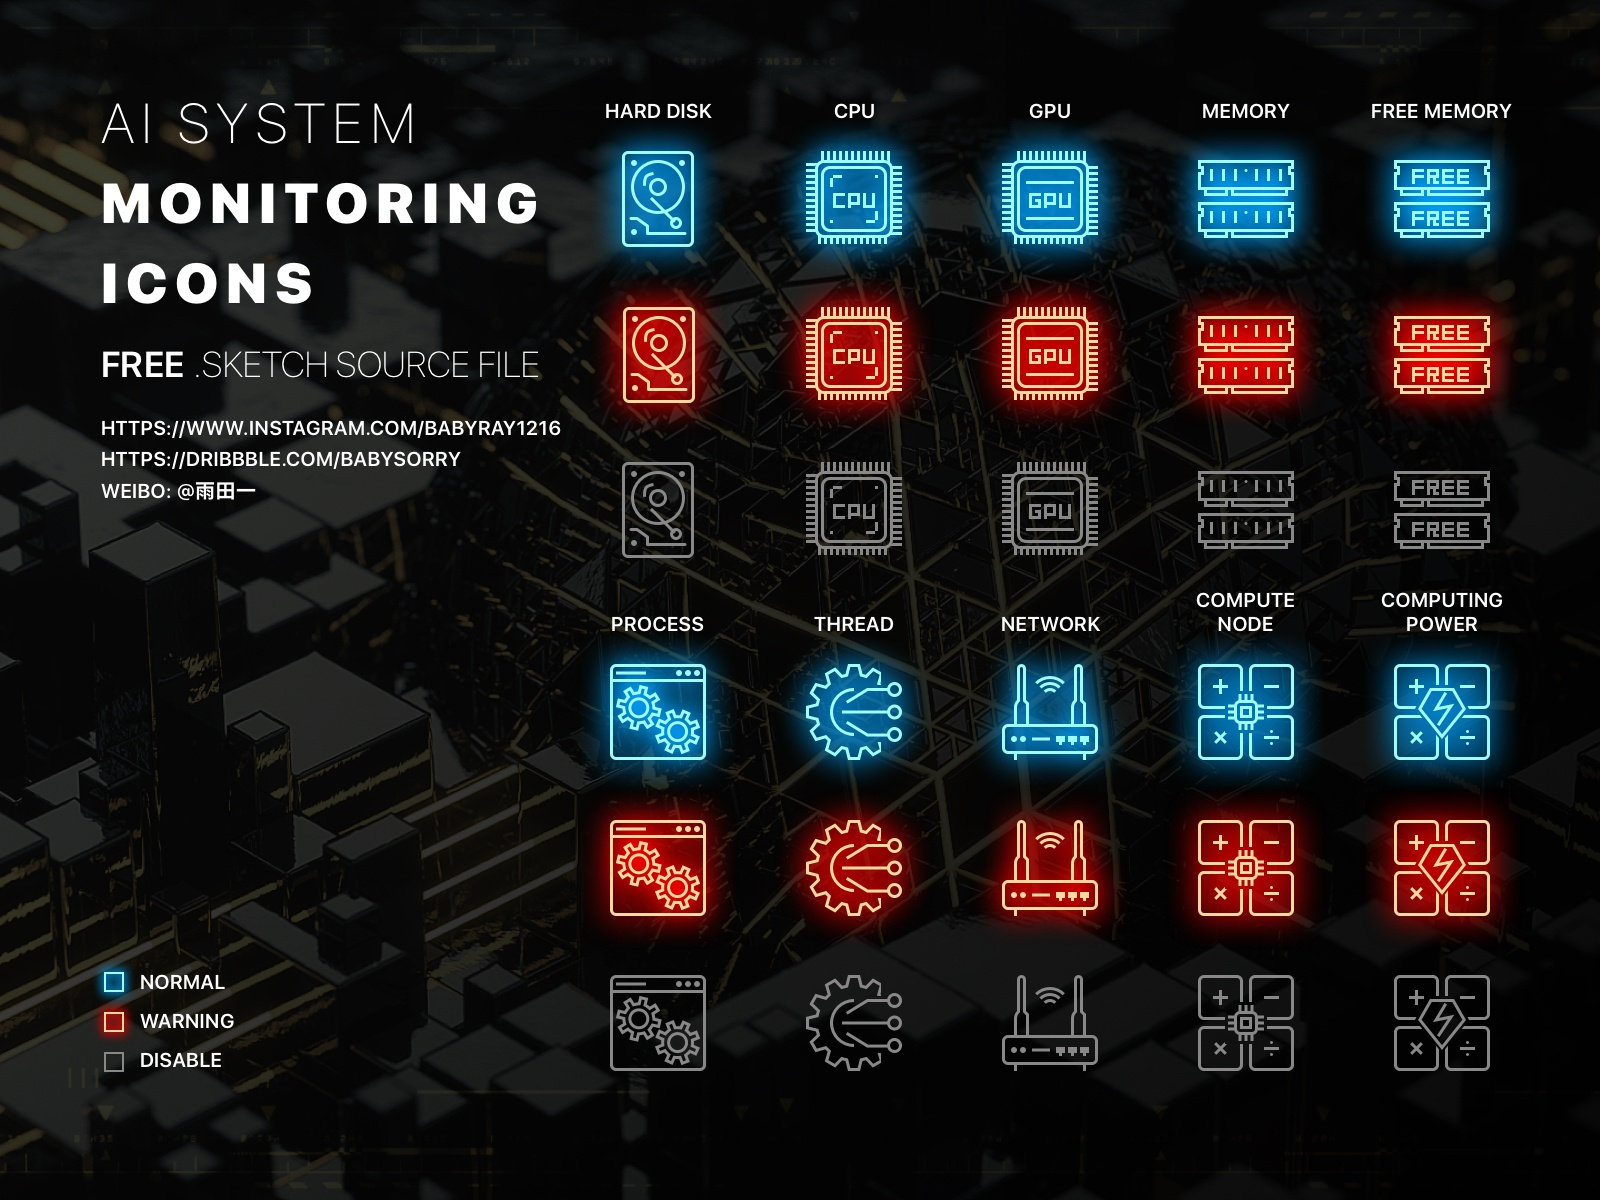 AI system monitoring icons - free sketch file